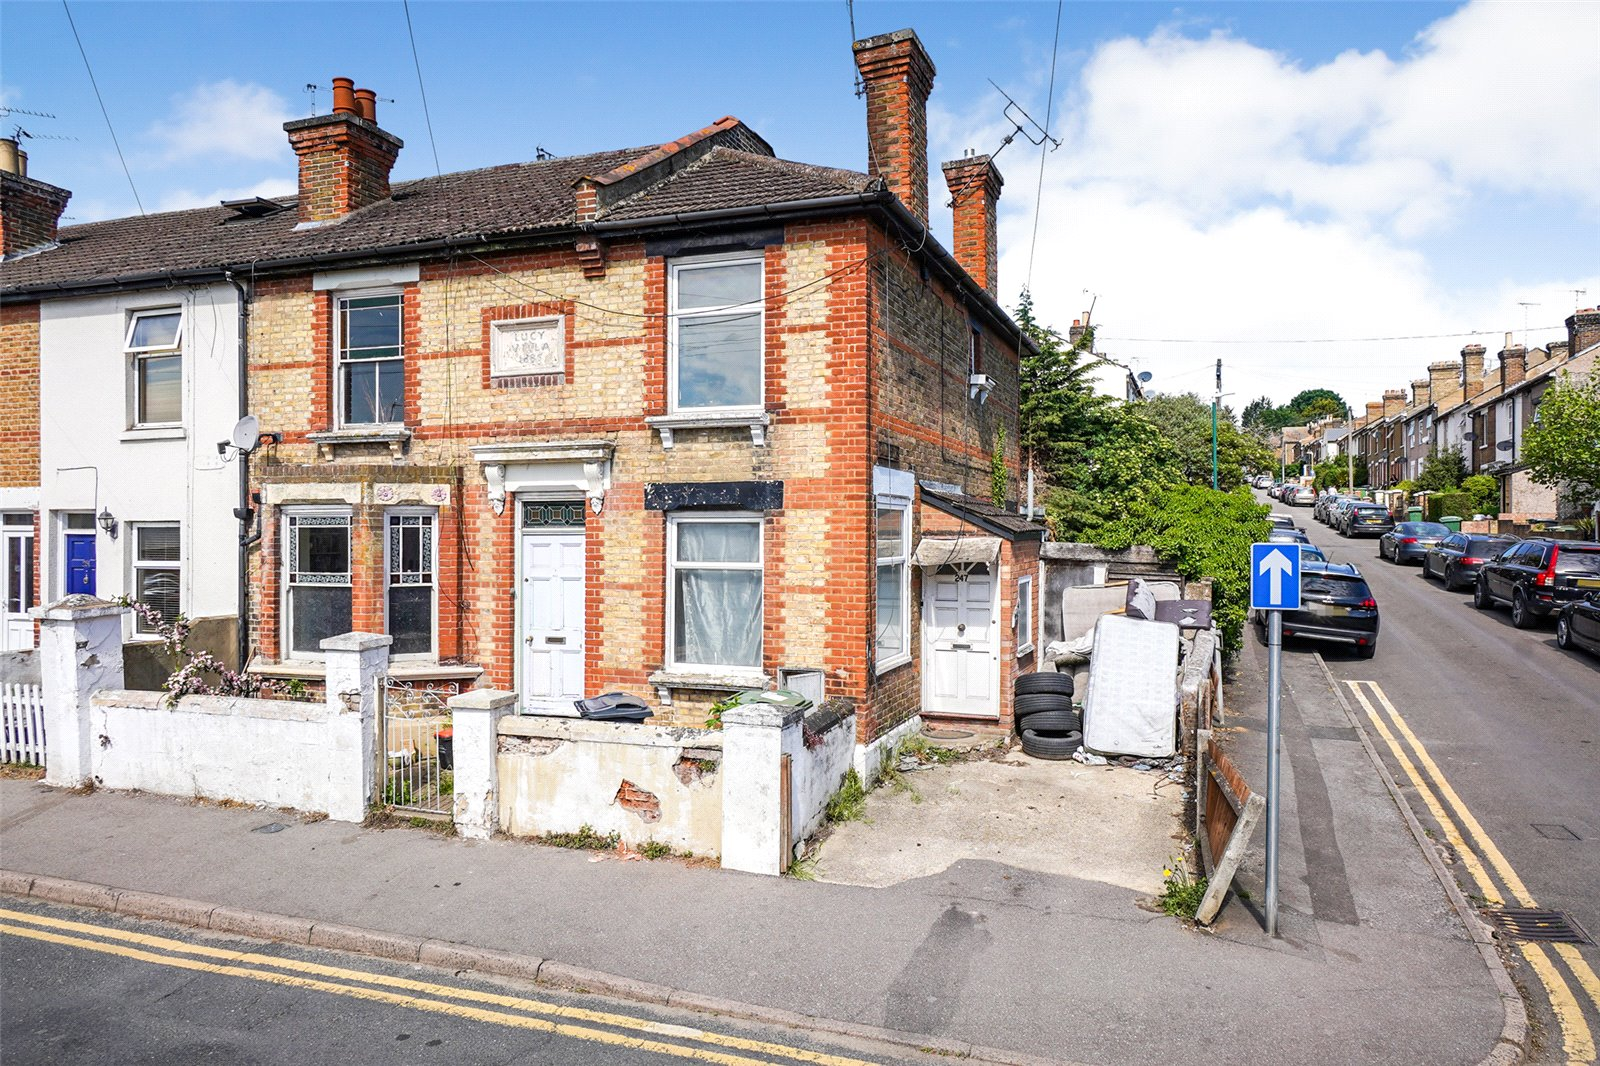 2 bed house for sale in Upper Fant Road, Maidstone, ME16